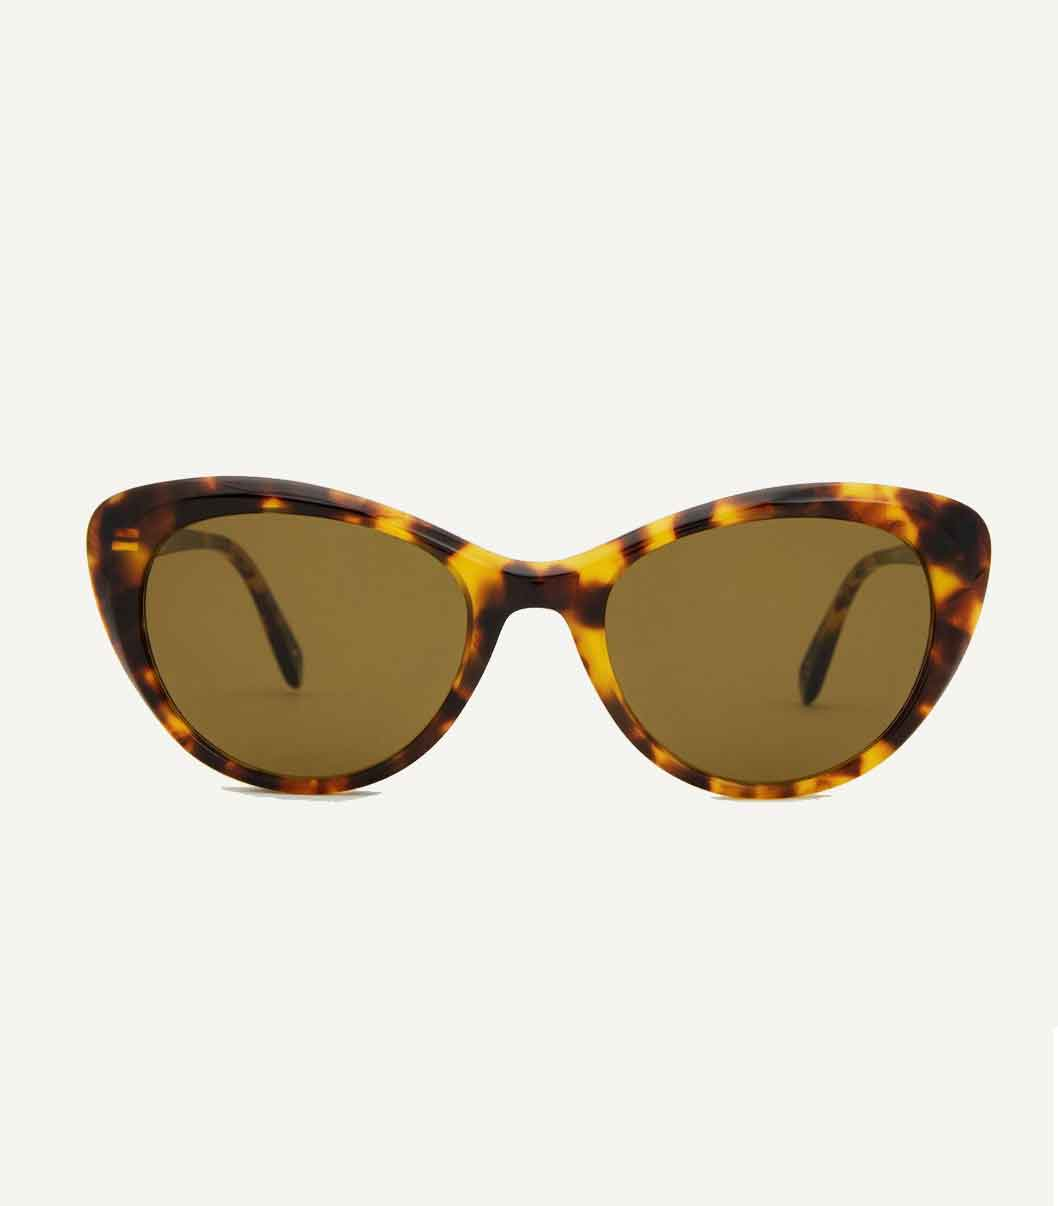 MOBY DICK NETHERLANDS SUSTAINABLE EYEWEAR BRAND good fashion guide ECOLOOKBOOK